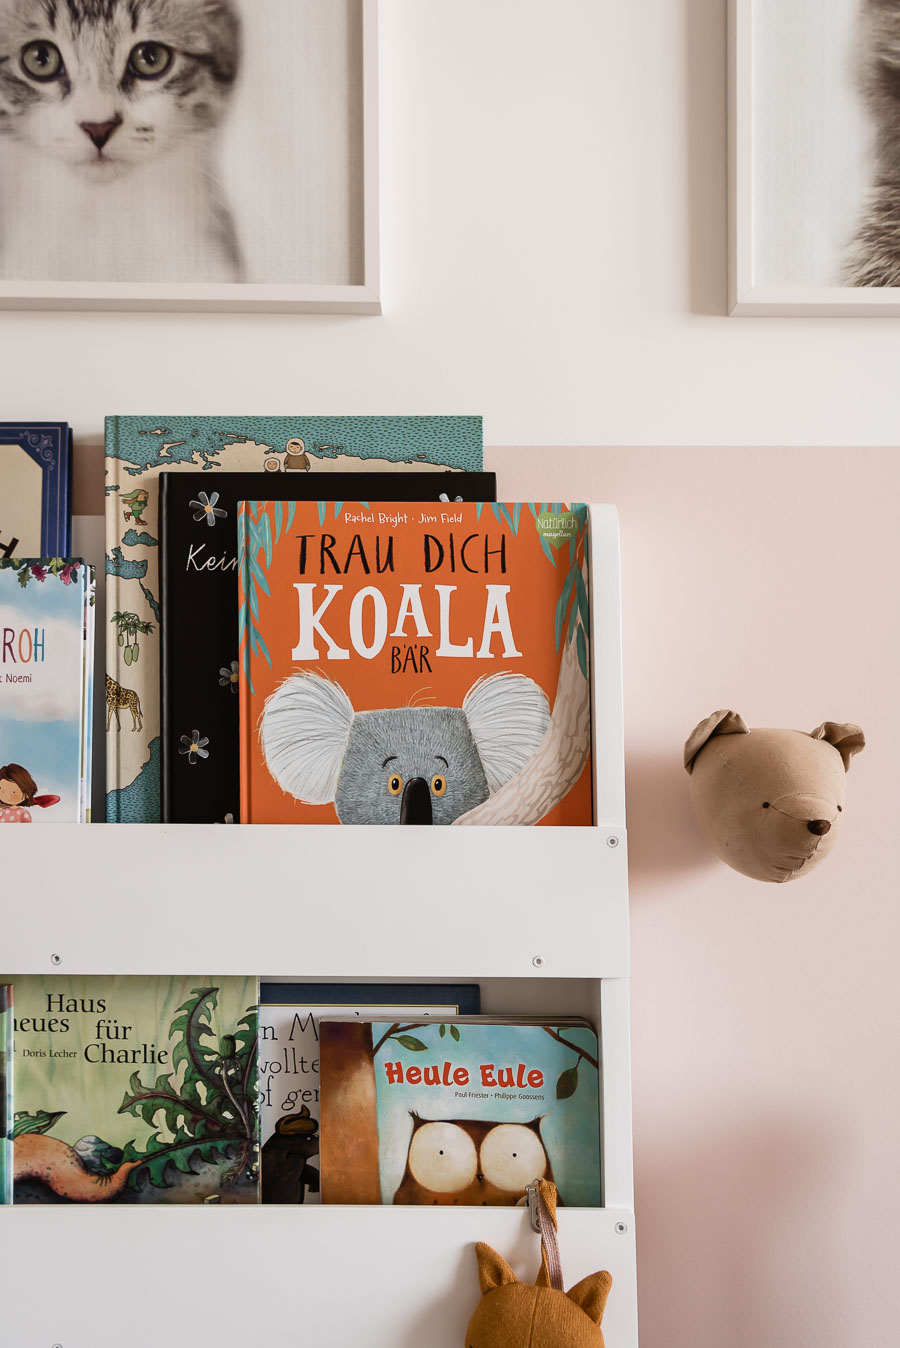 Our bookshelf for children: where we keep children's books and which children's books we particularly like # bookshelf # children's bookshelf # children's books #kinder's room